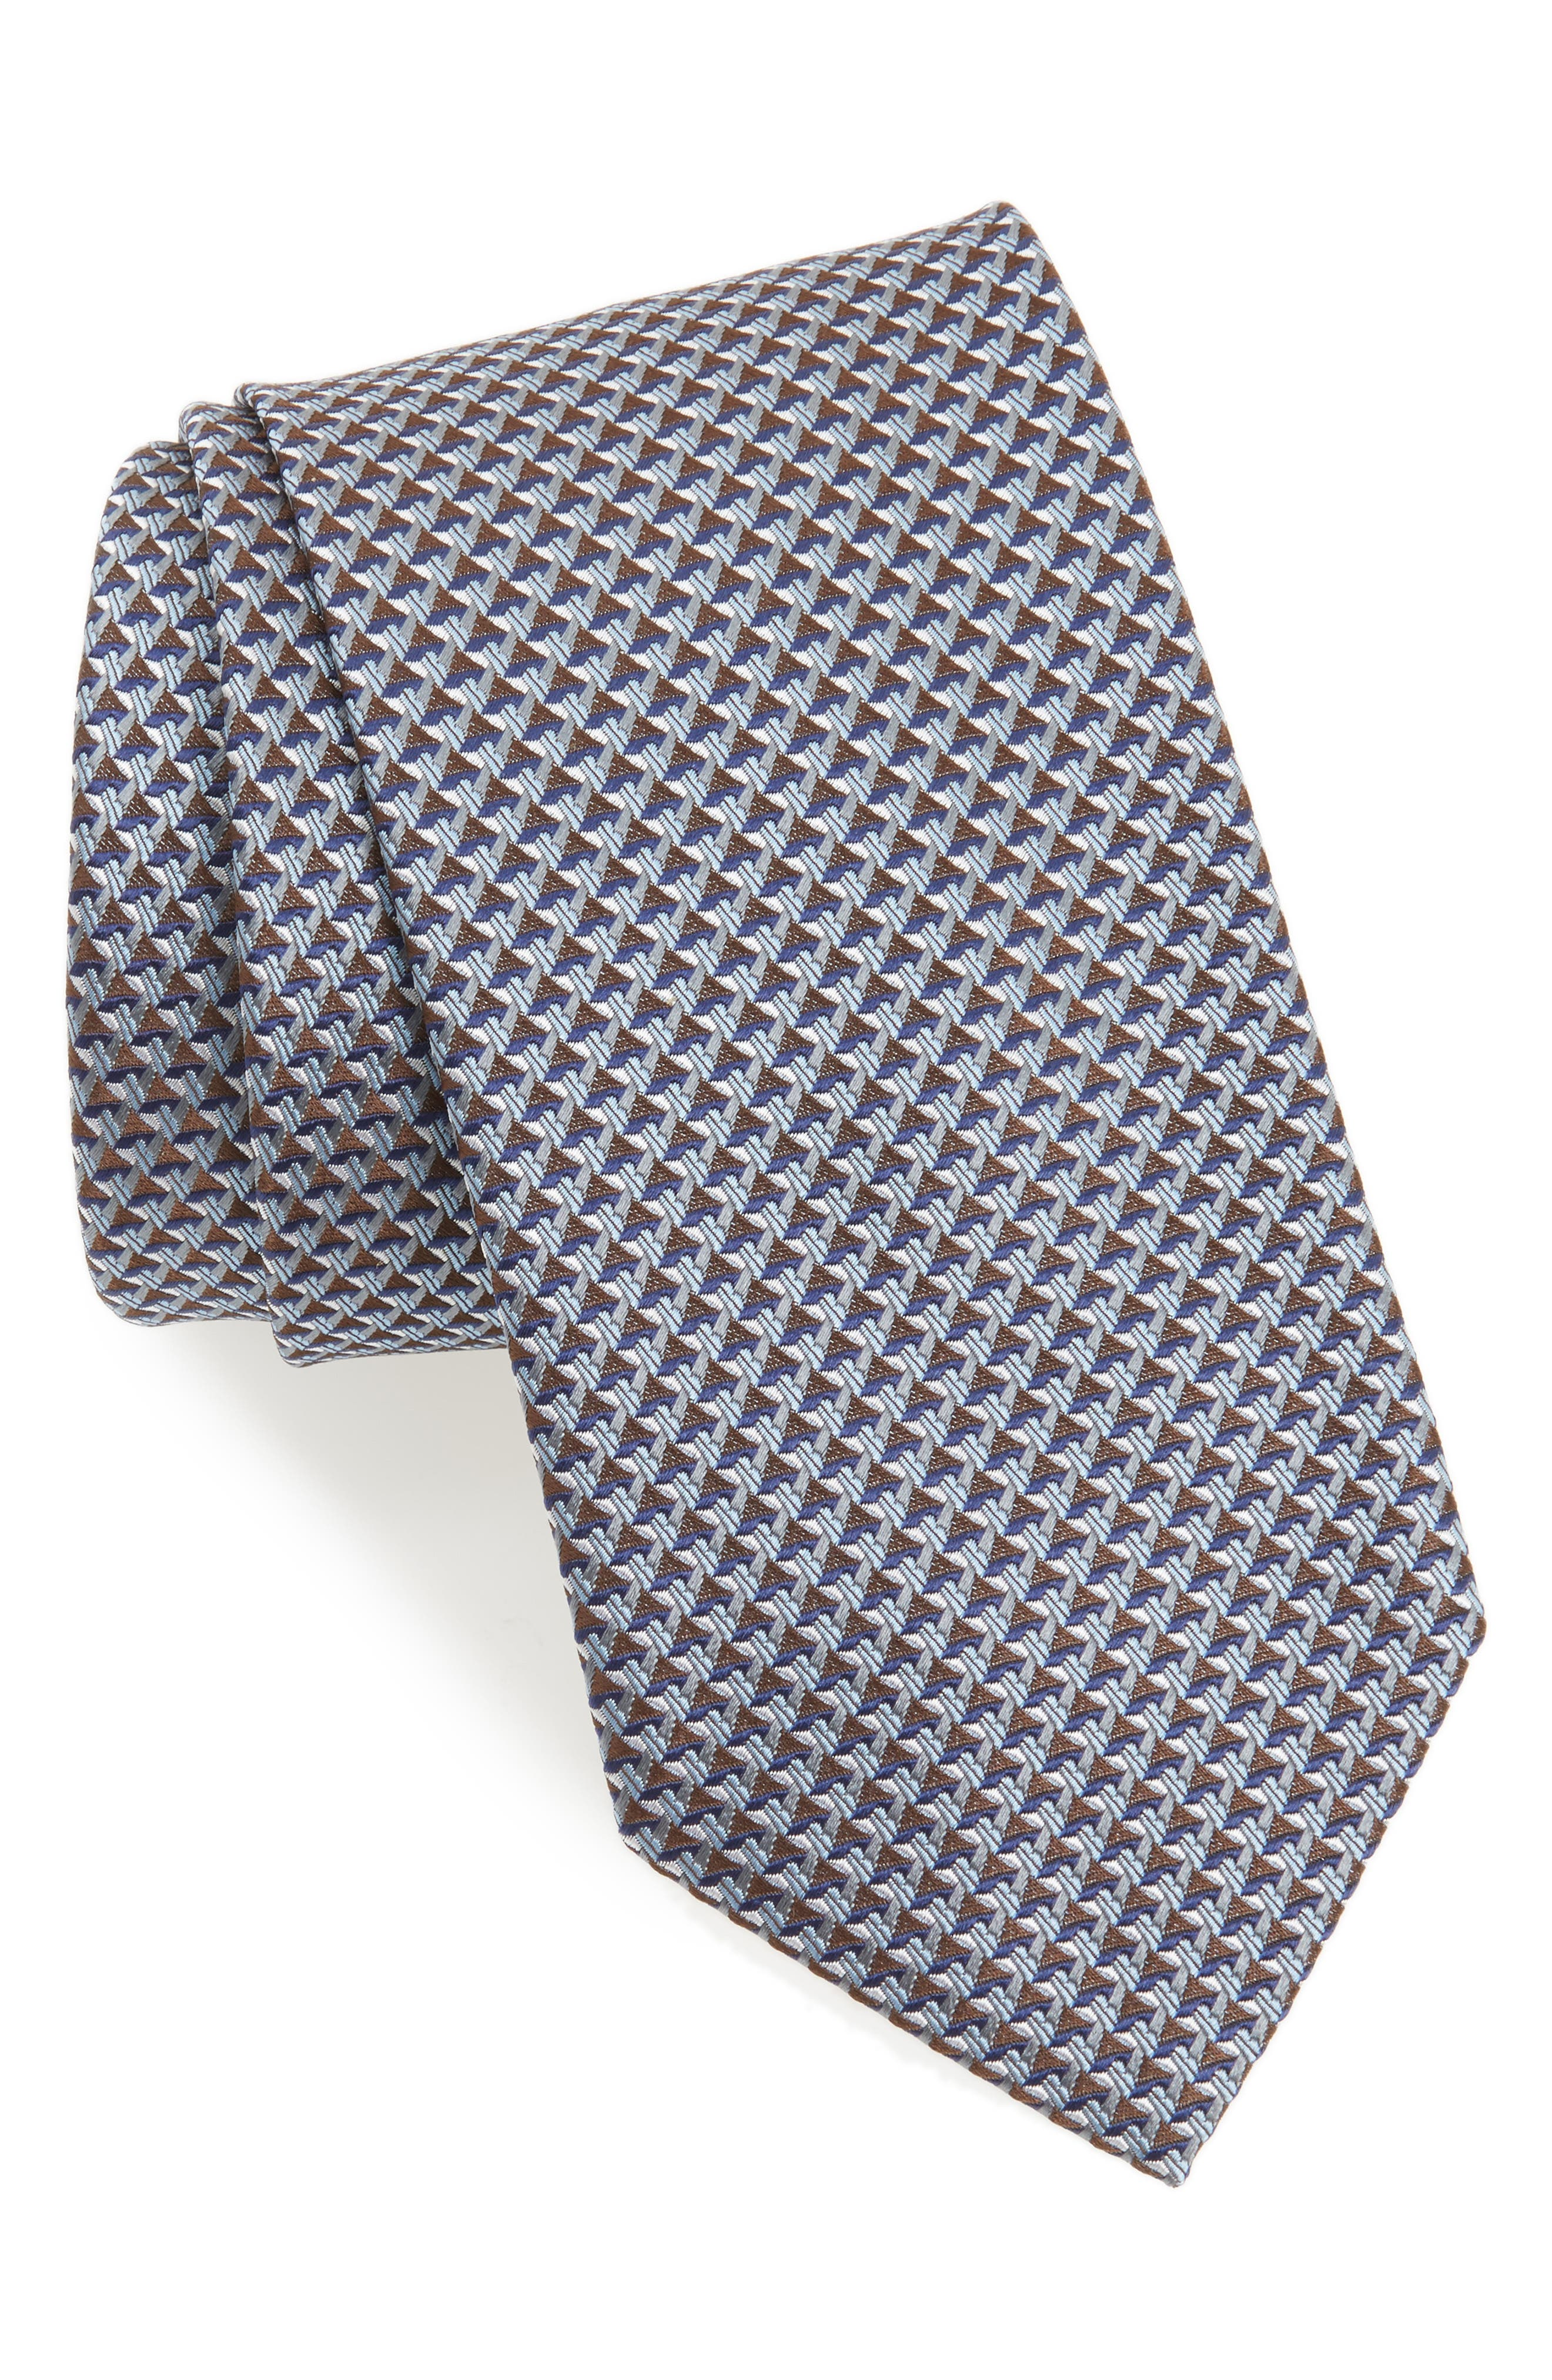 Alternate Image 1 Selected - Brioni Geometric Silk Tie